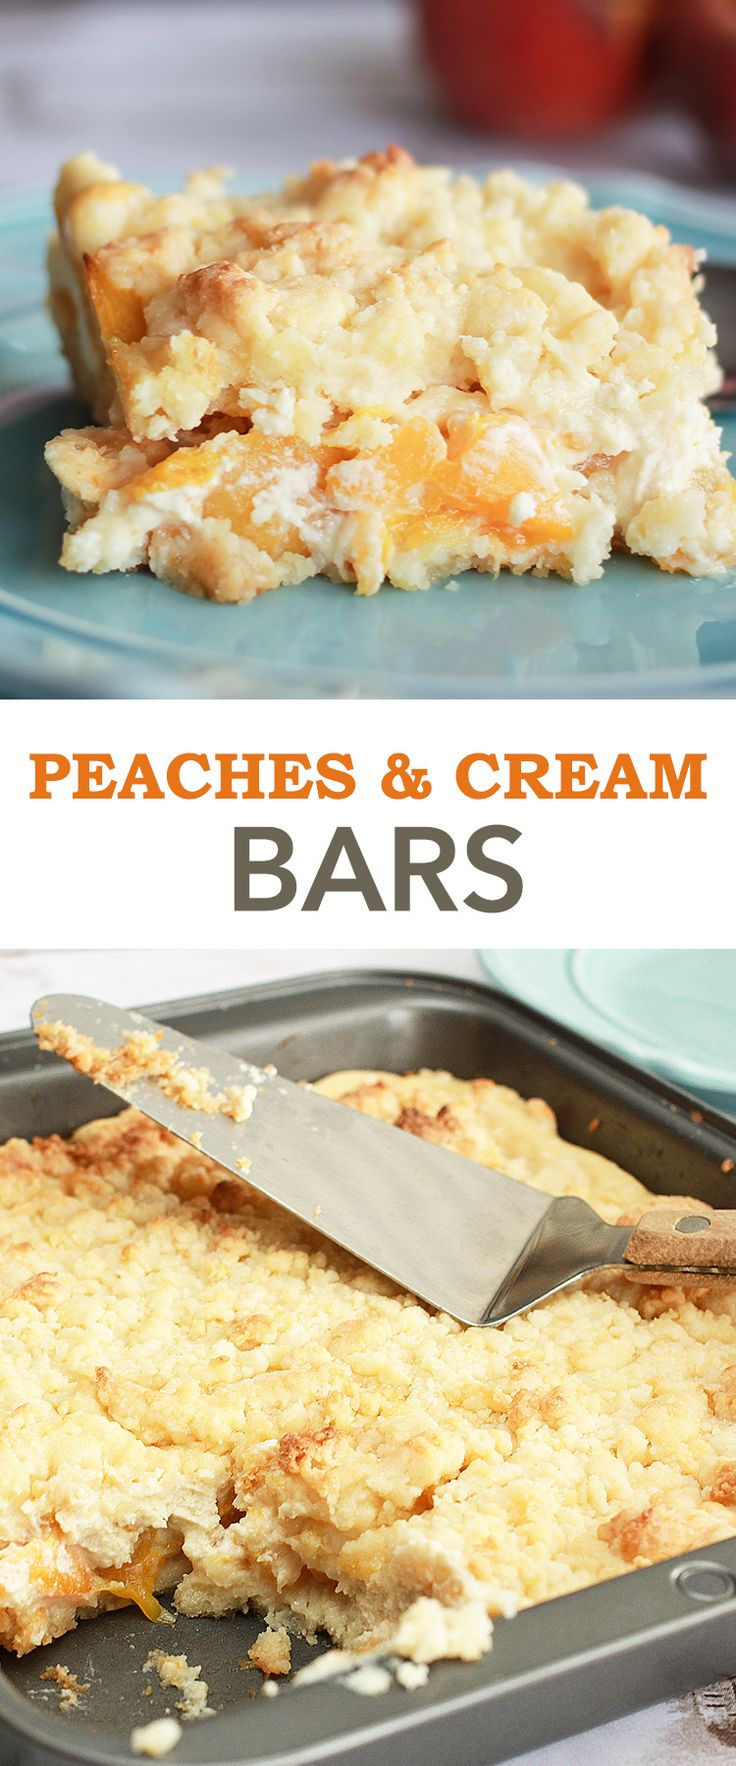 Peaches and Cream Bars Recipe - It's a dessert of fruit + white cake + cream cheese marriage that is sheer bliss!